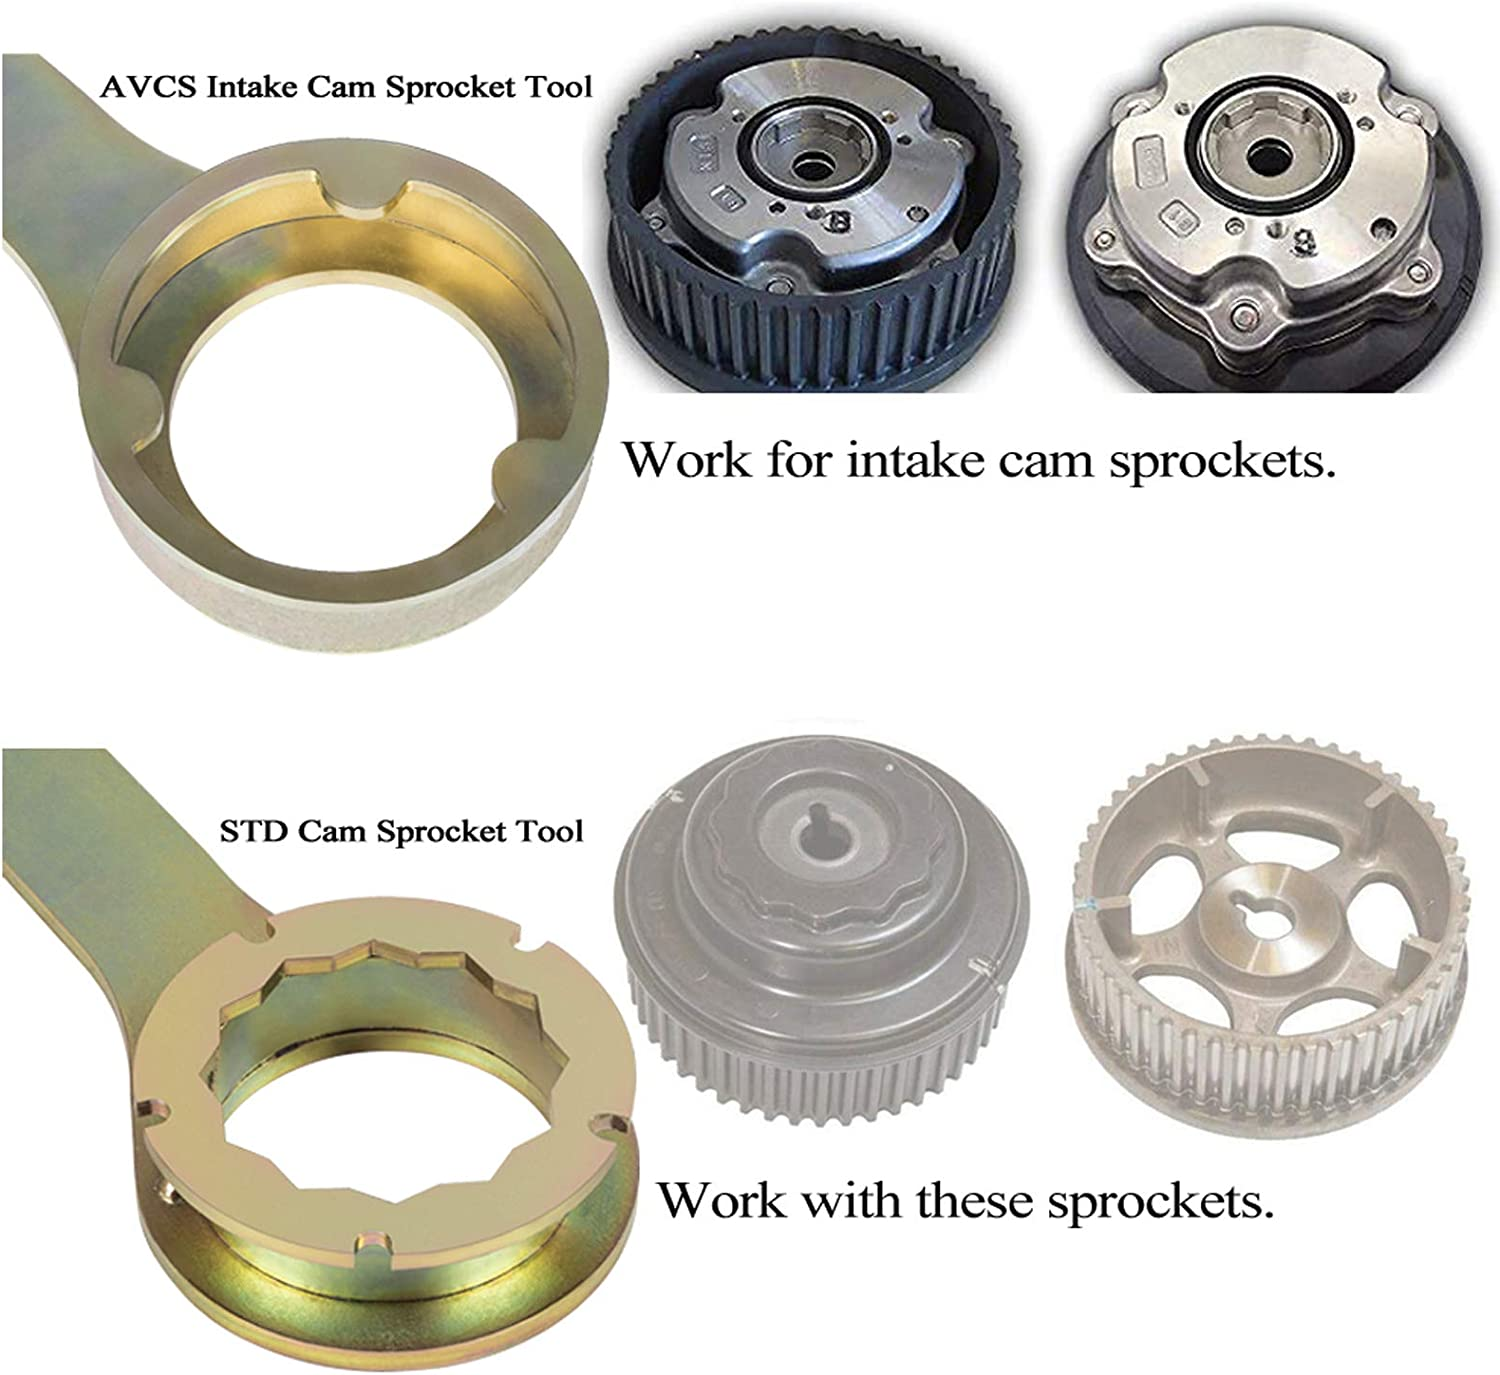 Perfect Combination Intake//Exhaust Cam Sprocket Install and Remove Wrench Tool for Subaru AVCS JDM /& STD